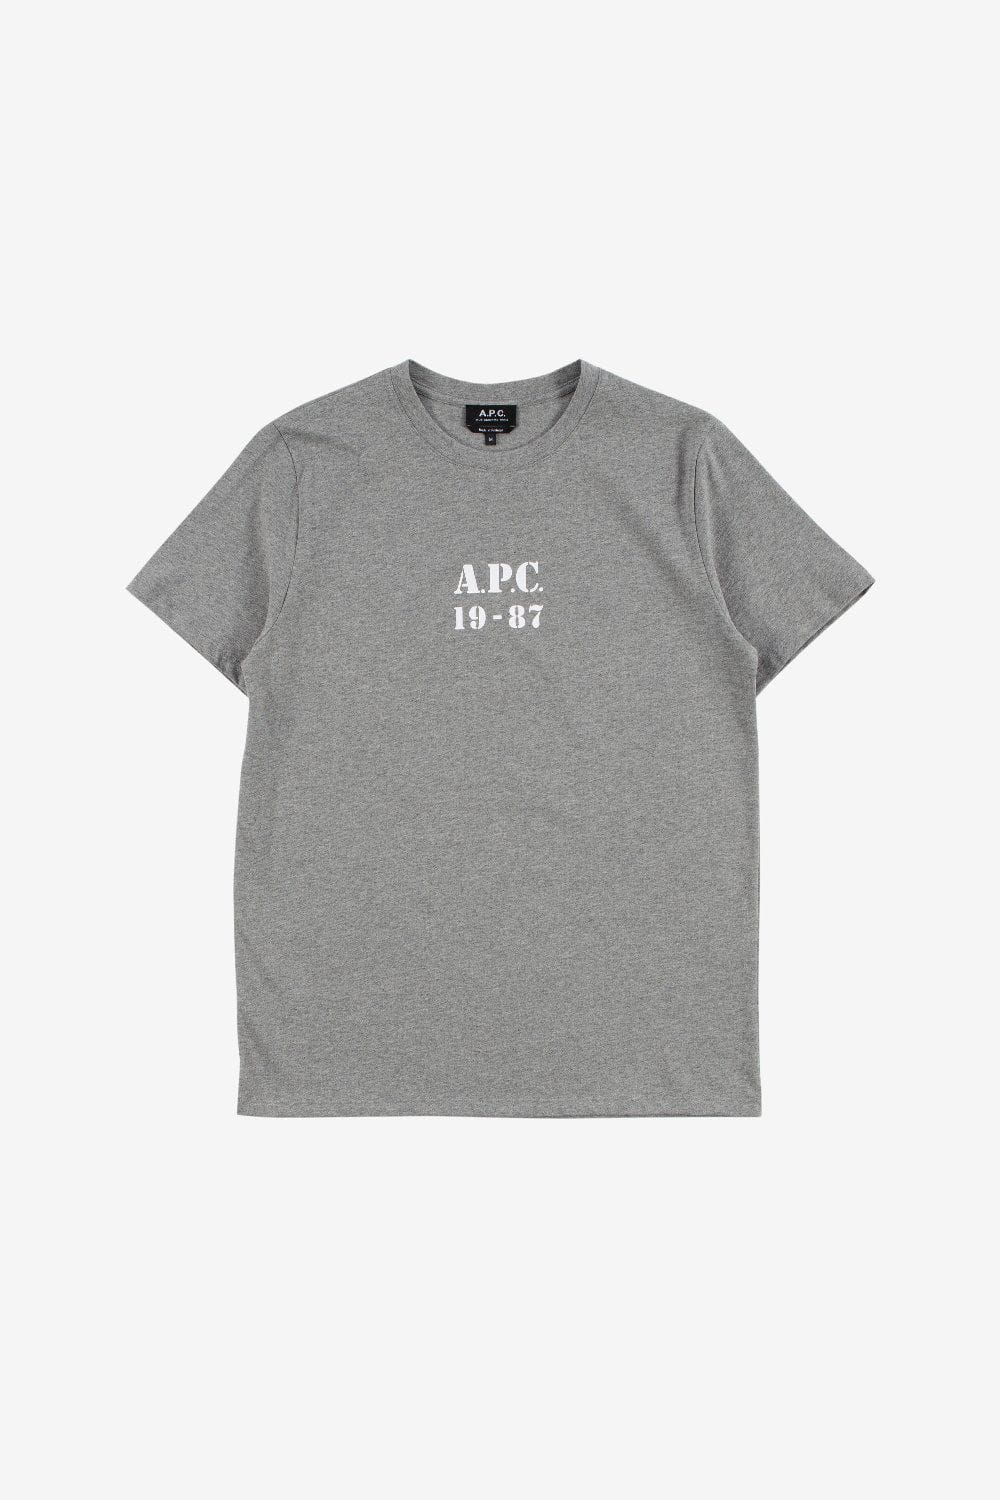 A.P.C. Apparel Georges Logo T-shirt Gris Chine